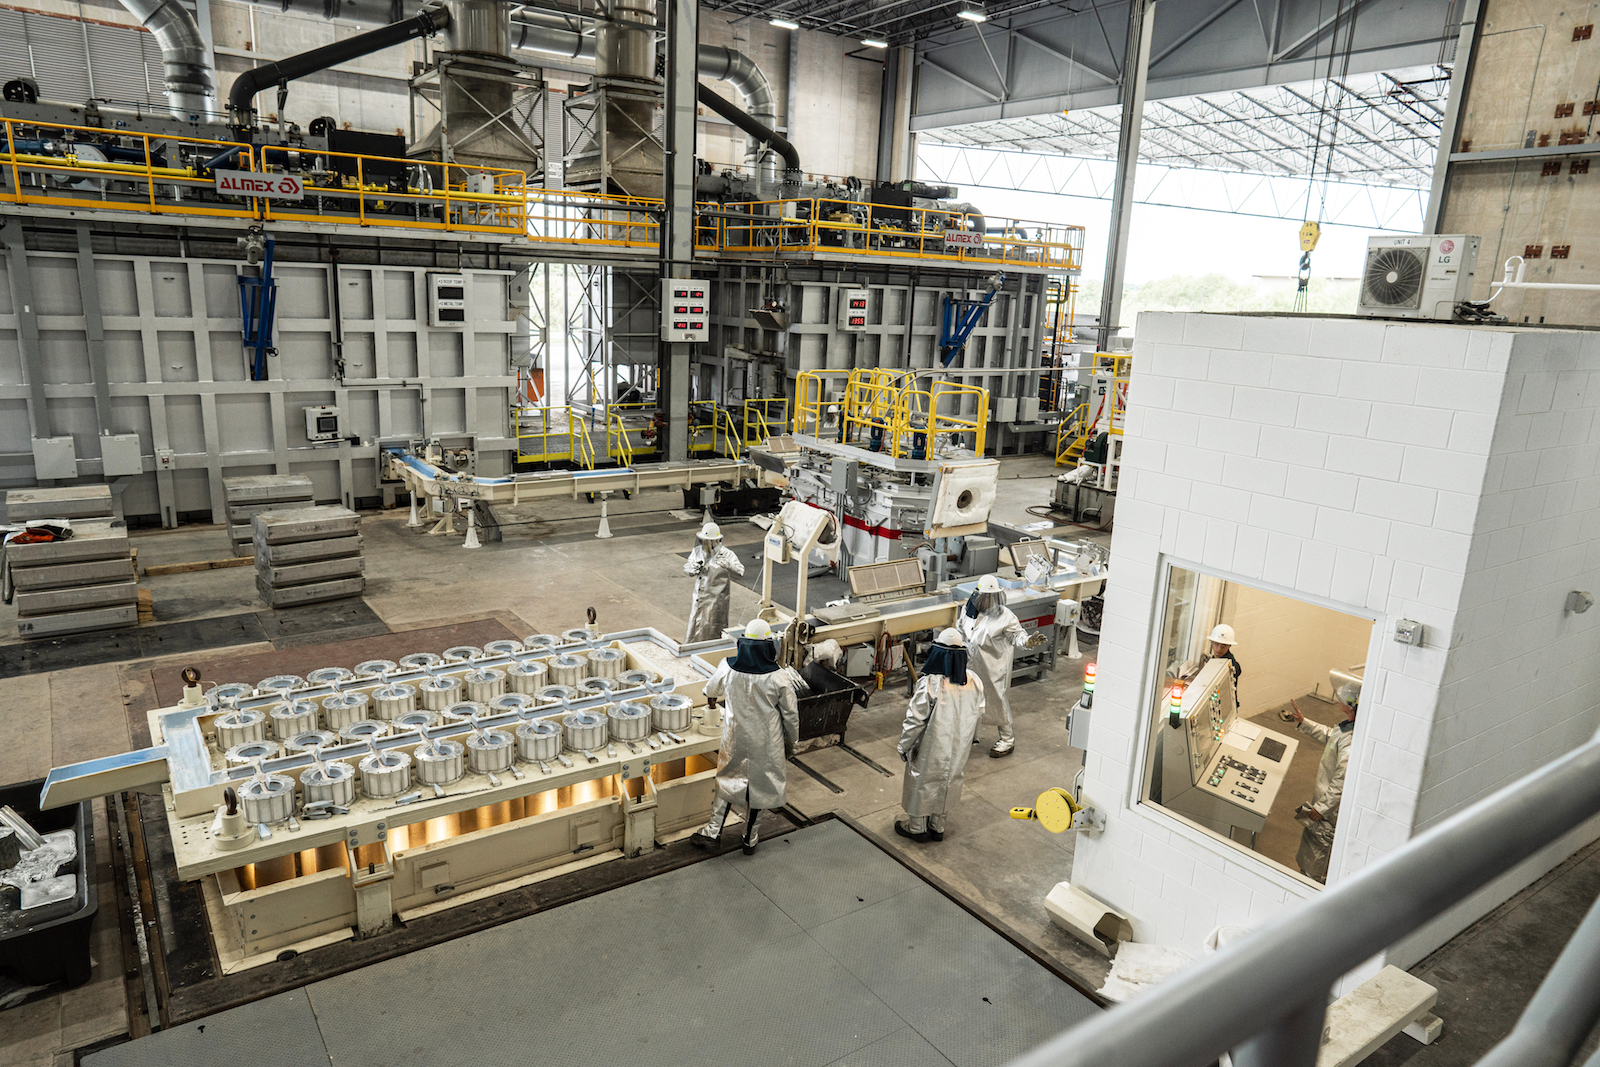 Figure 1. The casting area includes two melting/holding furnaces that feed the casting line, which is managed from the control booth.